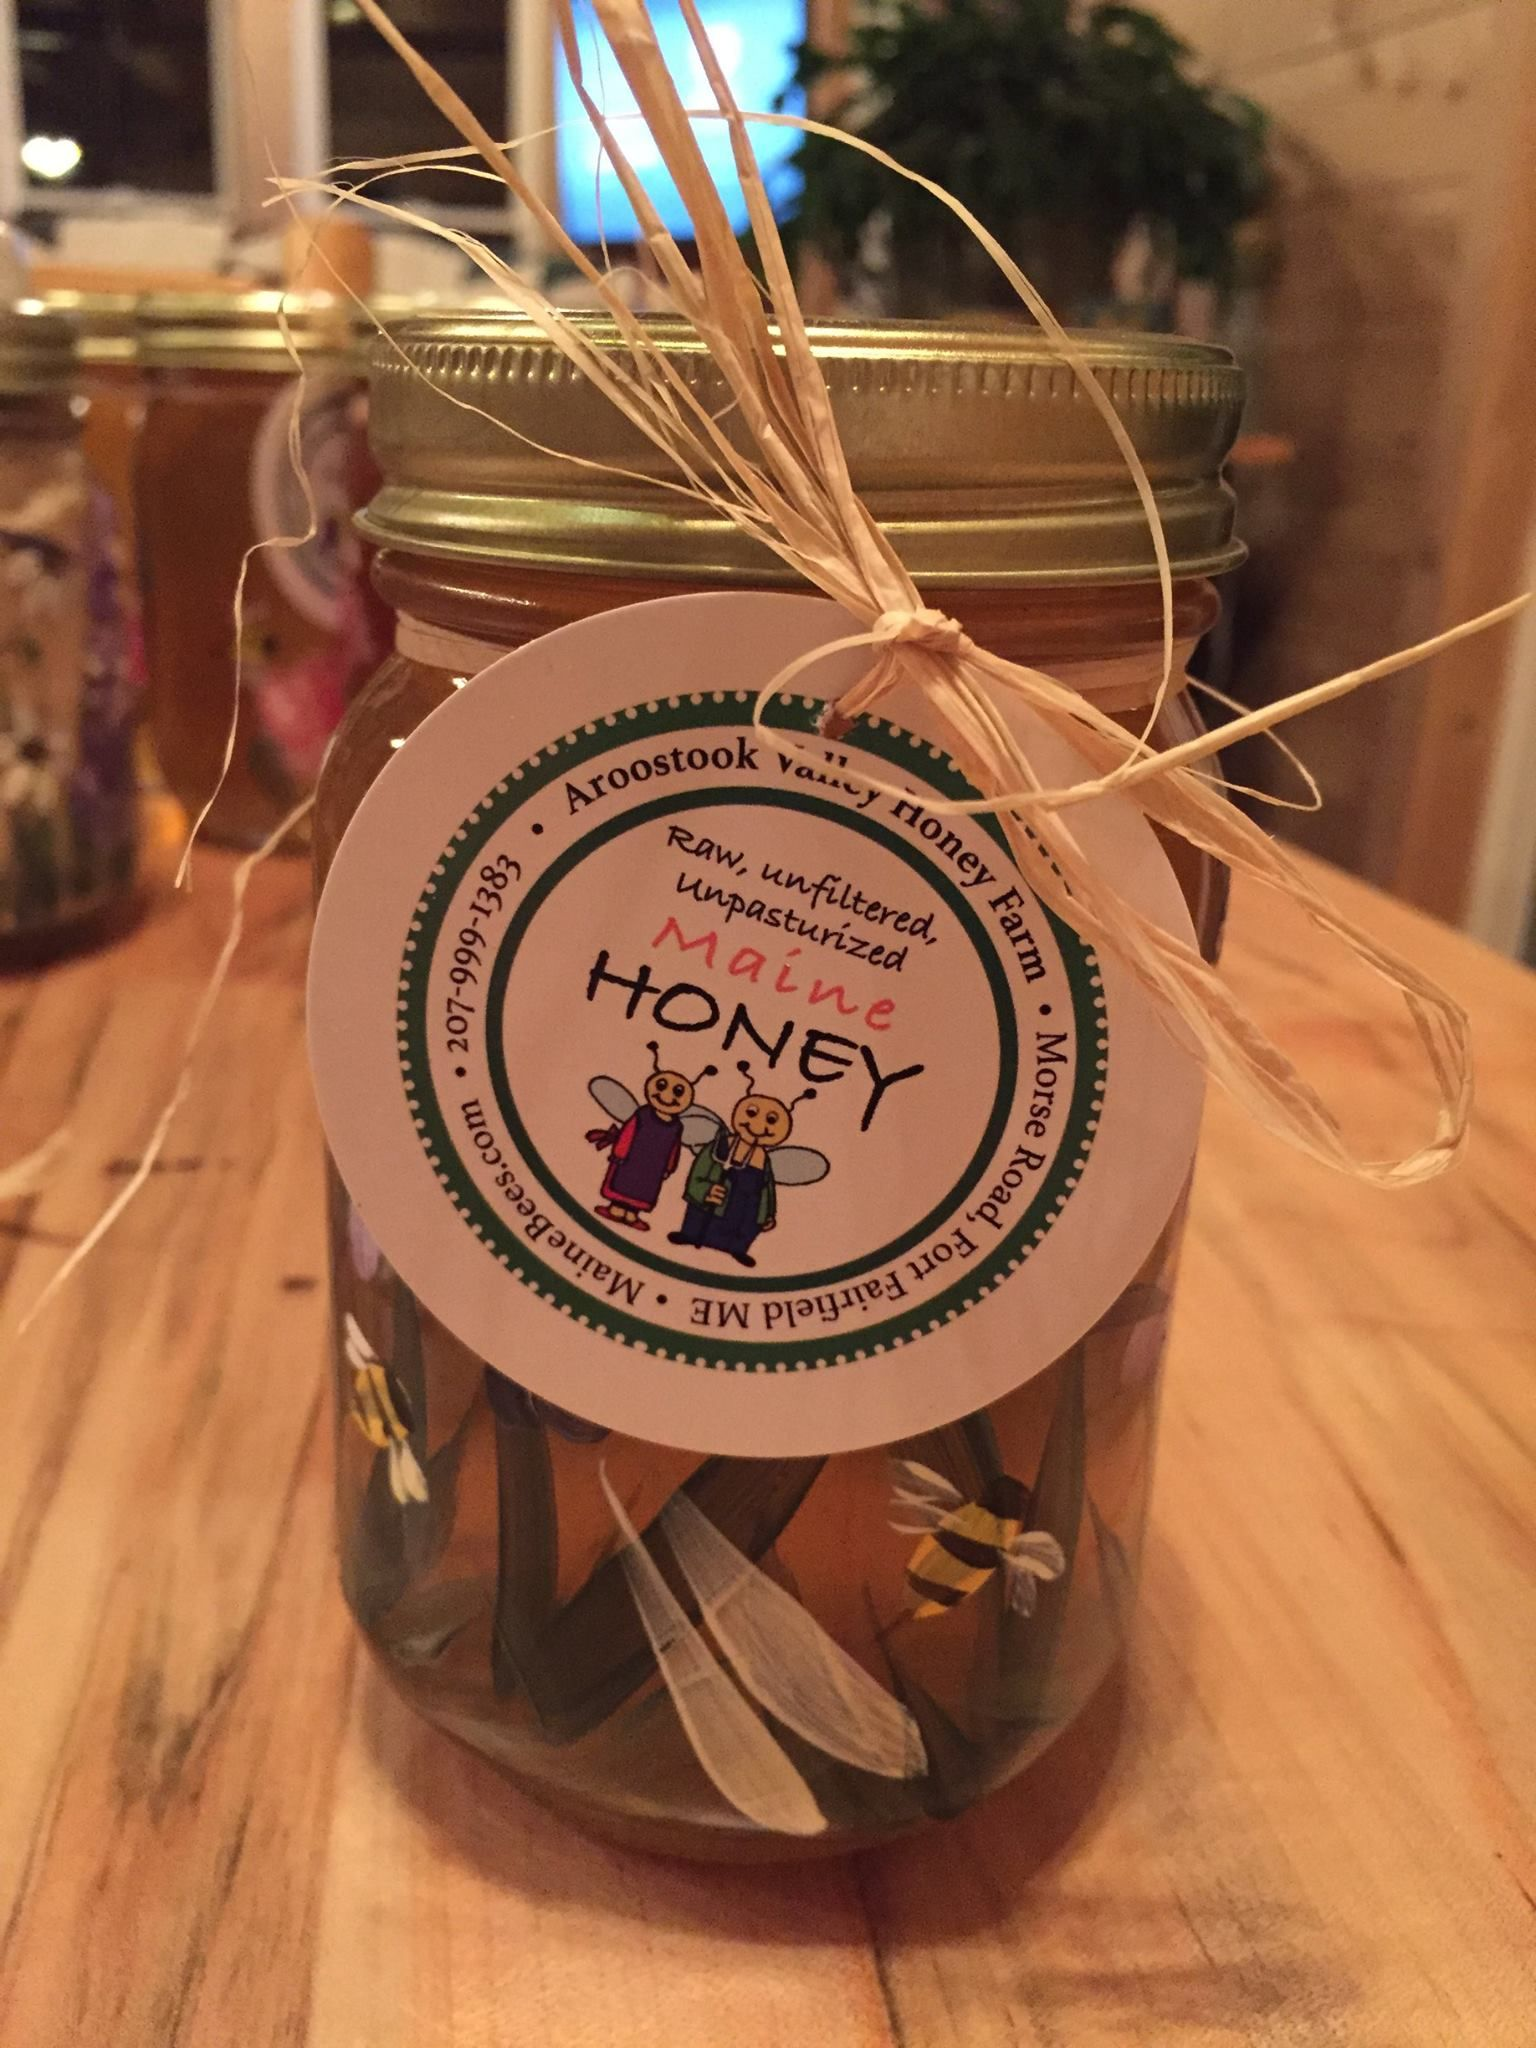 Pin by Northwoods Nectar on Food gift ideas (With images